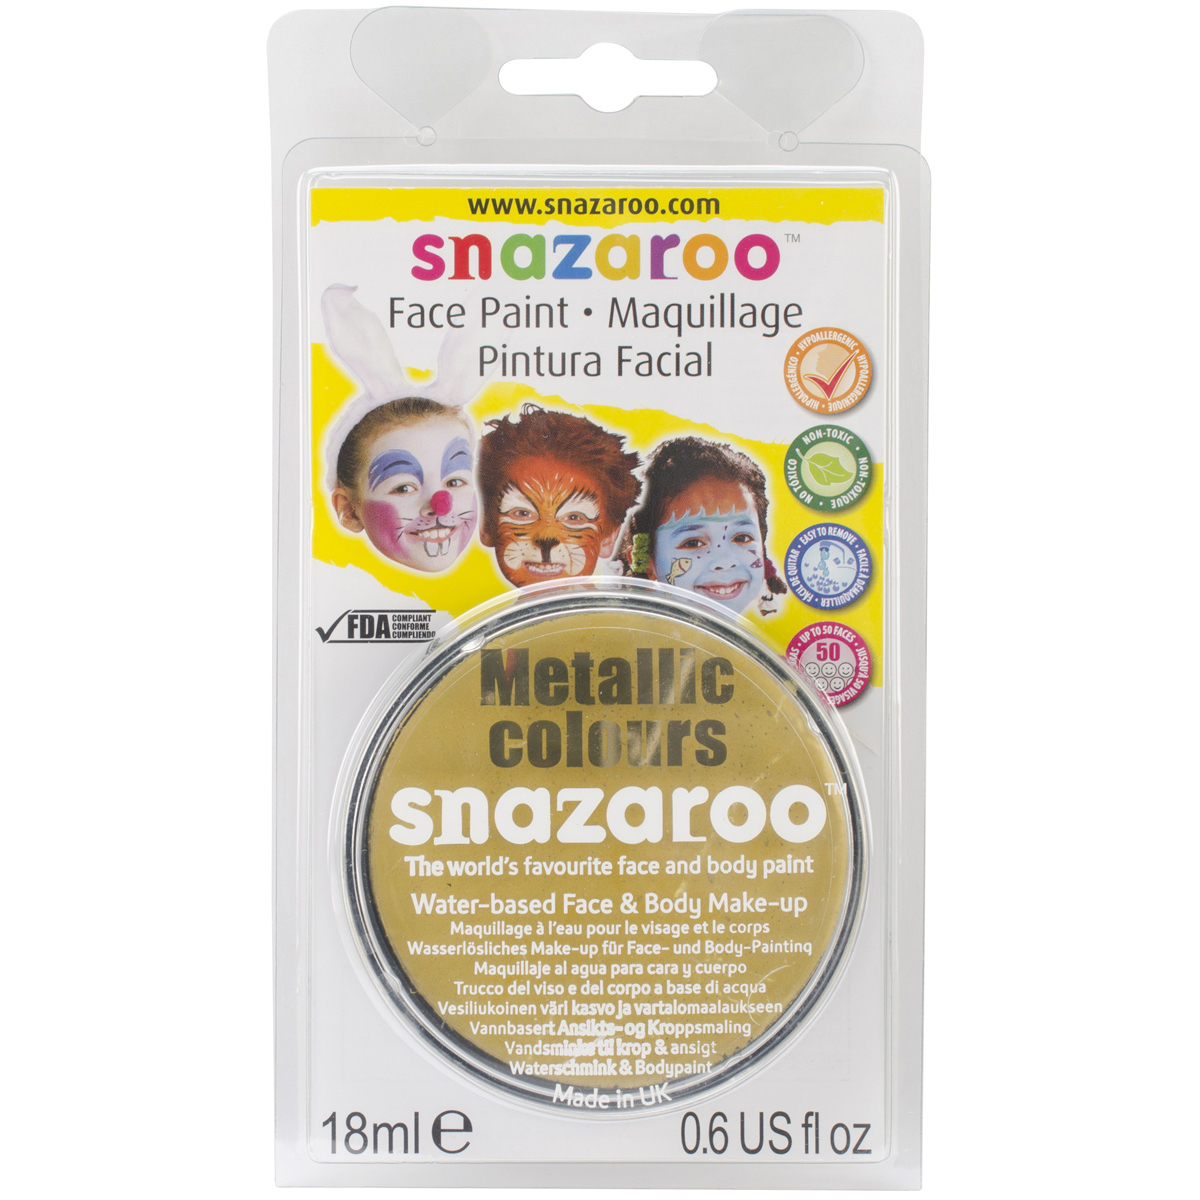 Reeves Snazaroo Face Paint, 18ml, Gold Multi-Colored